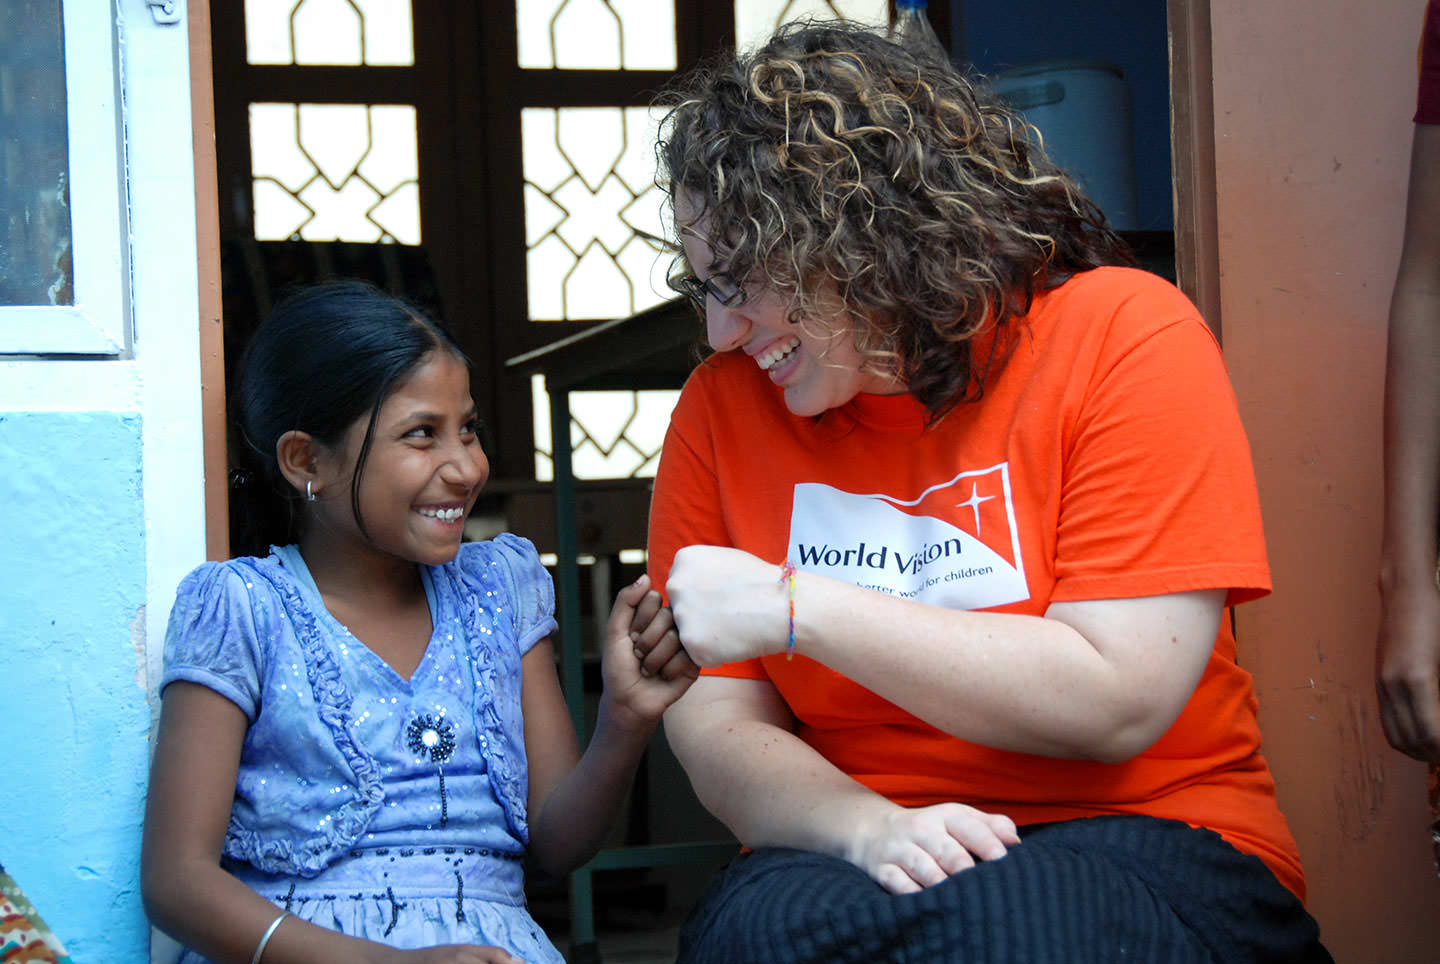 Andrea Zahler, a World Vision Child Ambassador and Brown House volunteer, traveled to Sitapur, India, to meet Laxmi.